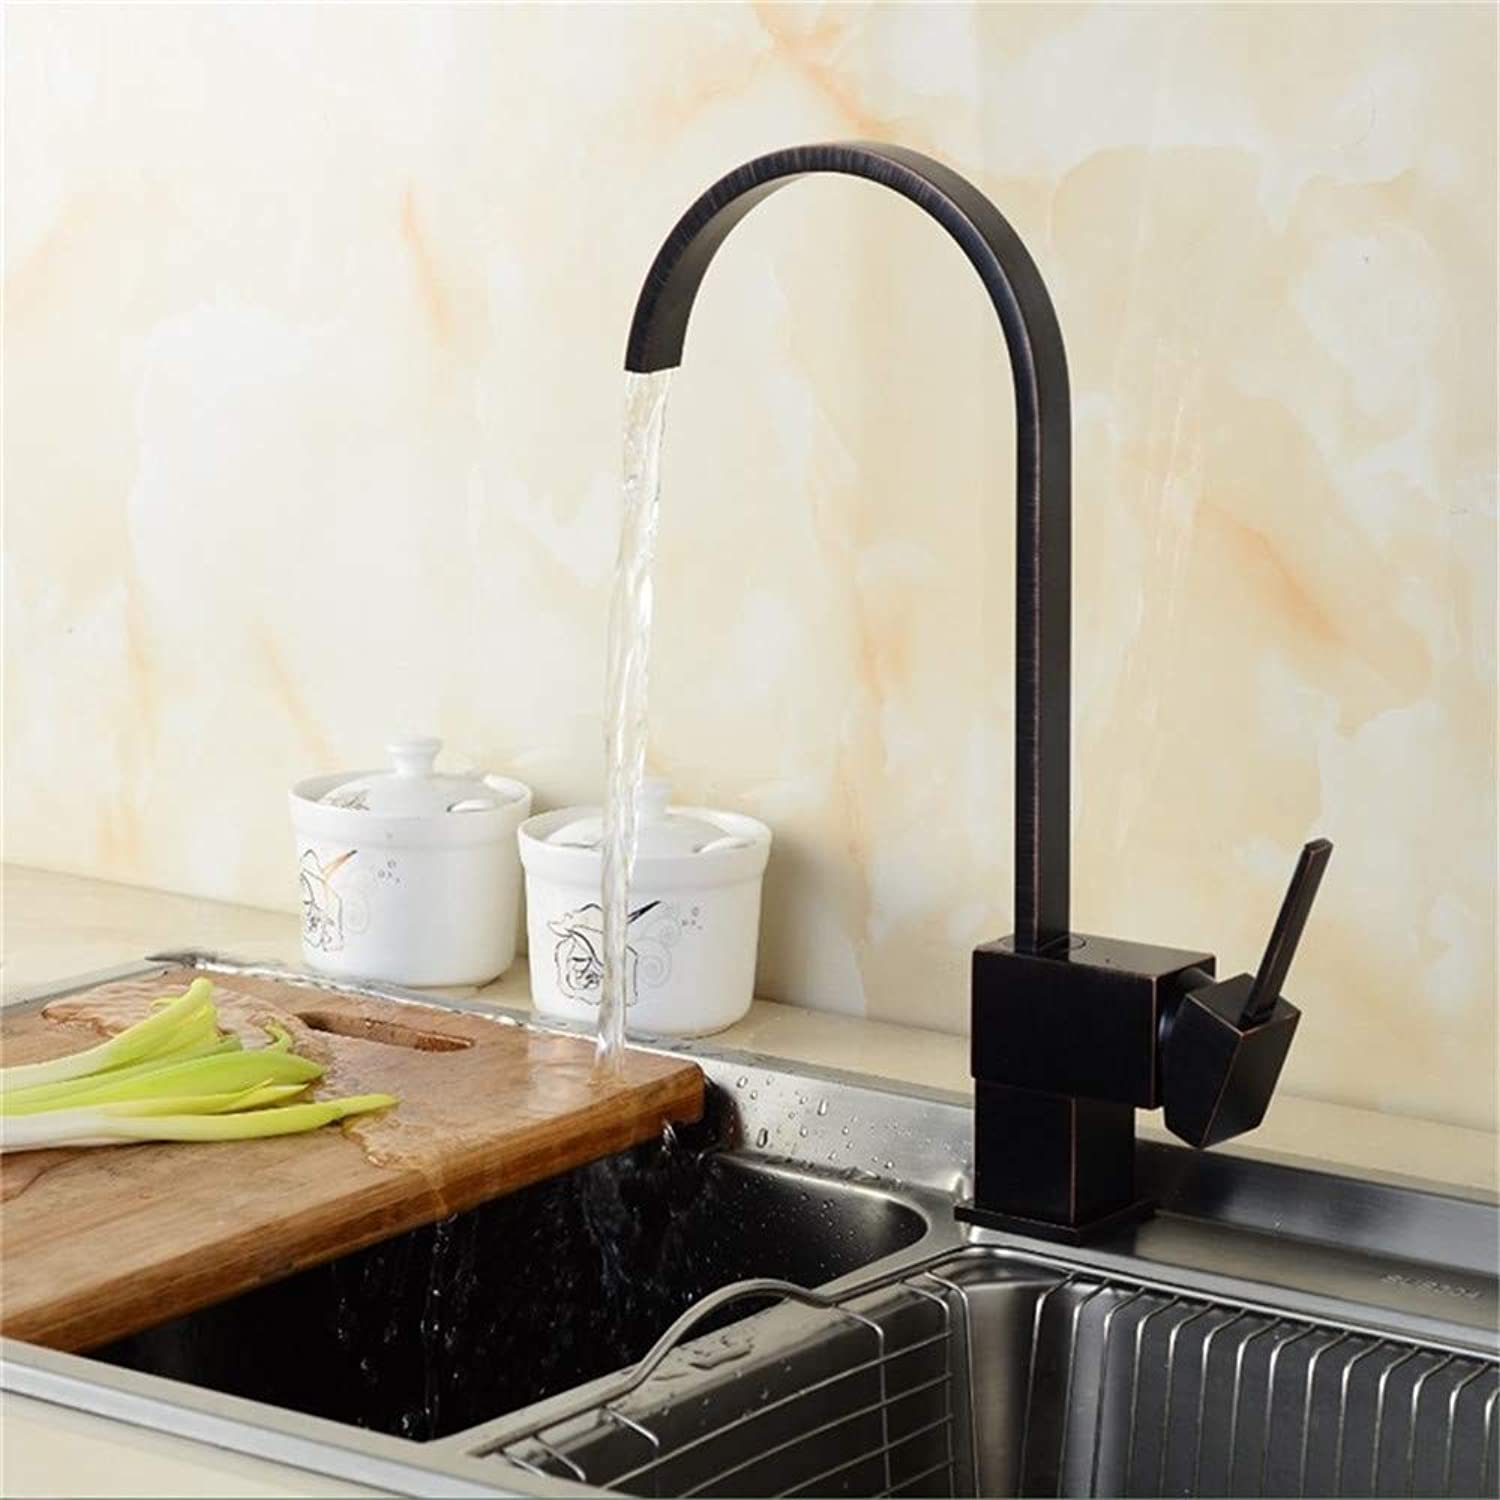 YAWEDA All Copper Kitchen Faucet Wash Vegetable Basin Faucet Faucet Black Faucet Faucet Hot and Cold Water Mixer Faucet